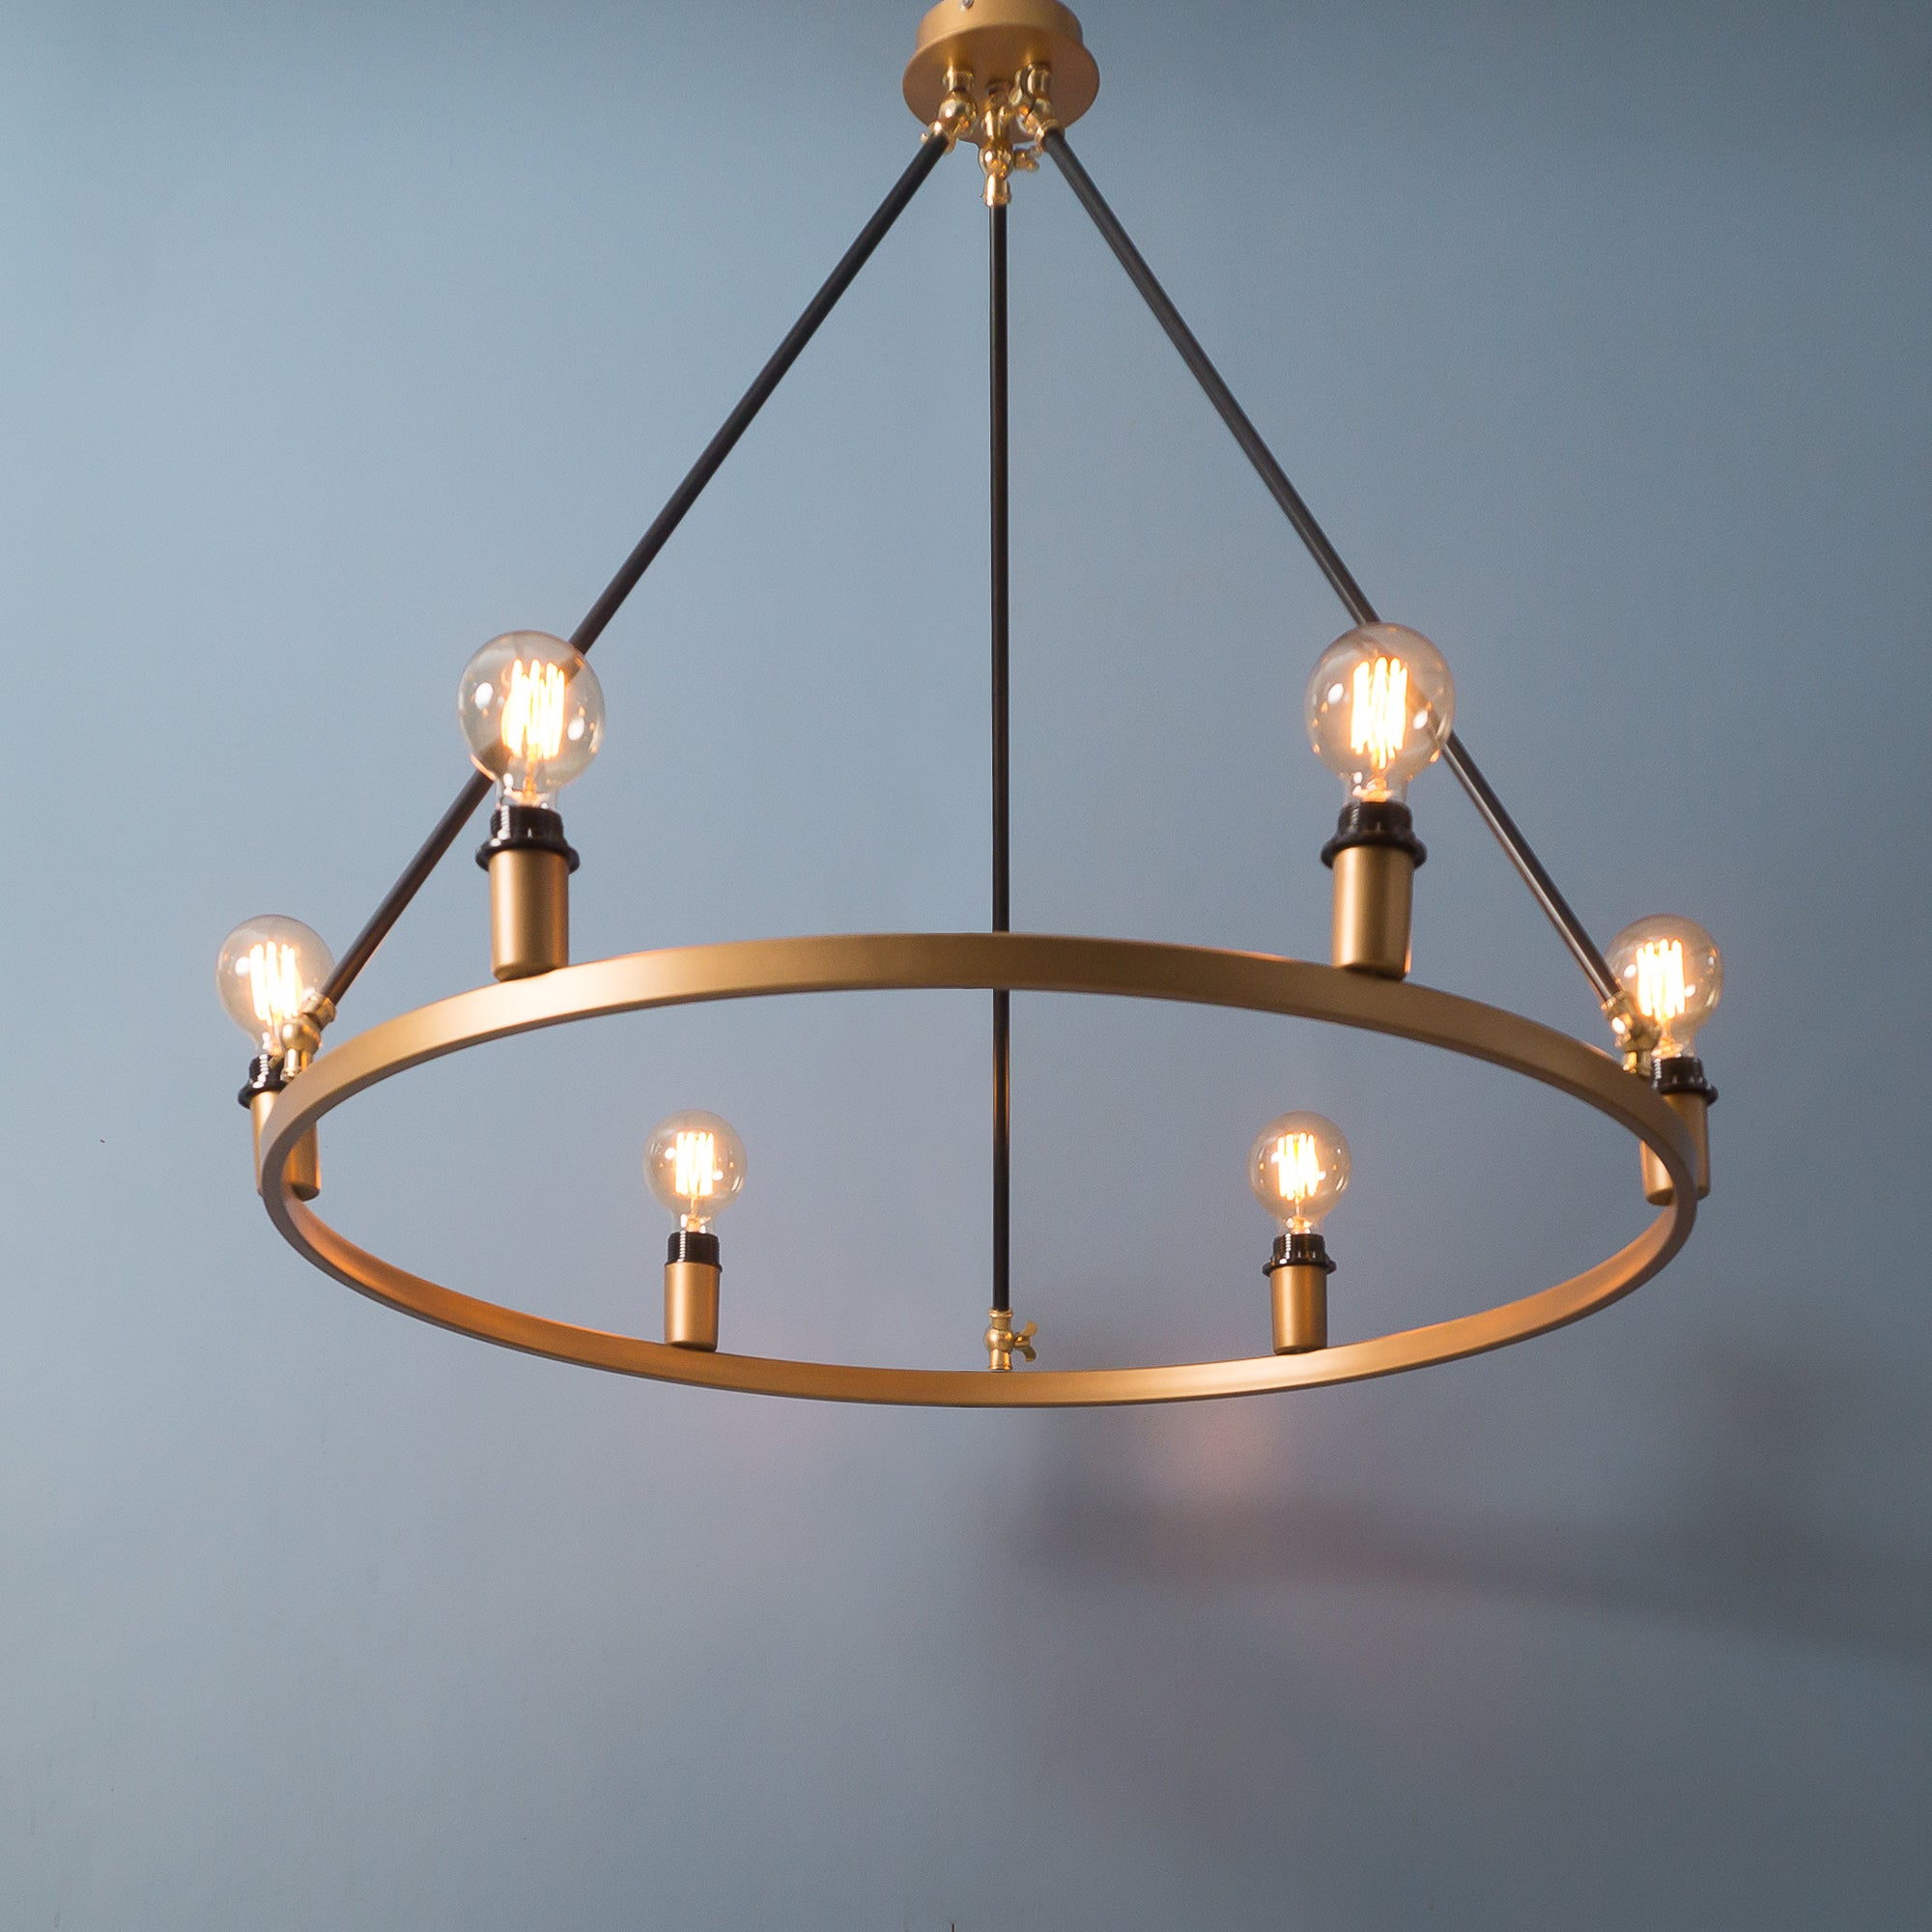 CLR109 Vintage Gold and Black Chandelier